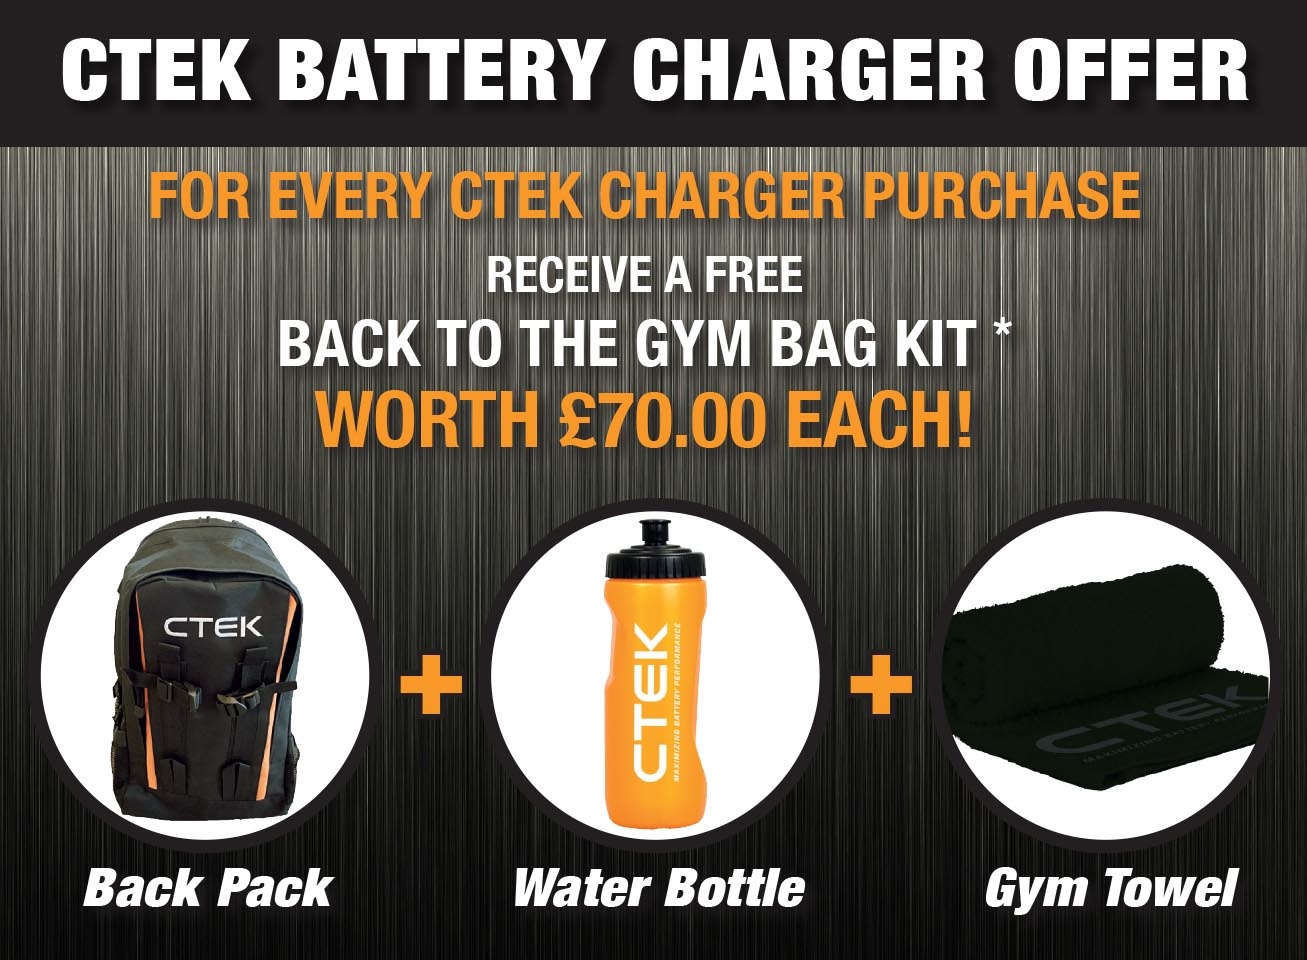 CTEK BATTERY CHARGER OFFER